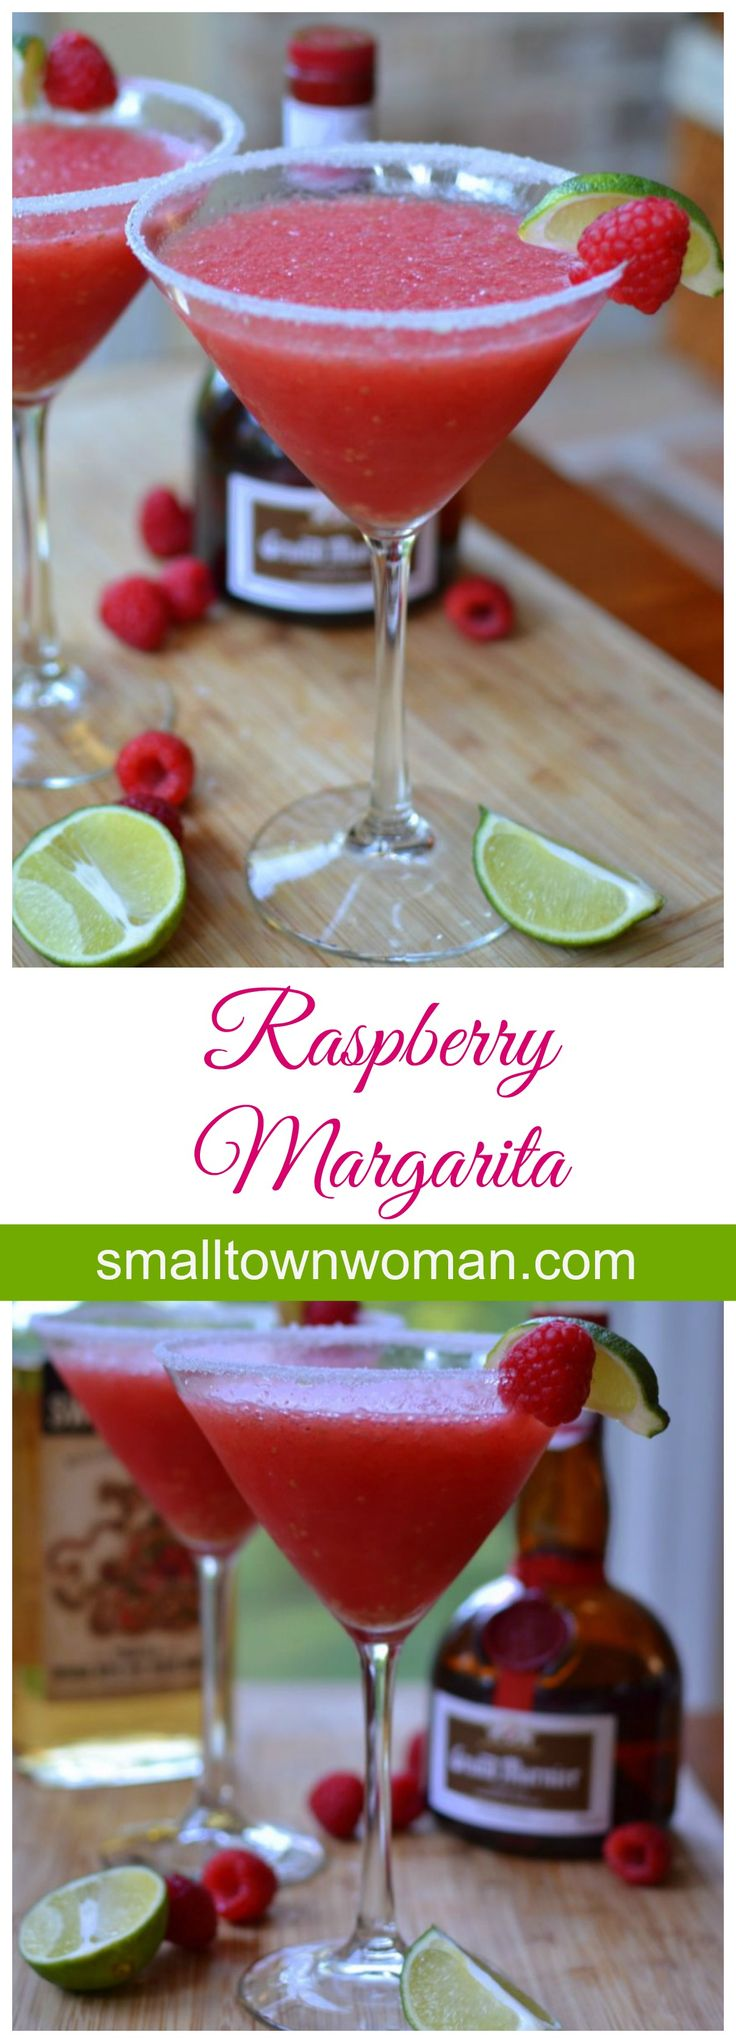 There is nothing quite like a Raspberry Margarita. Raspberries are delicate, sweet, flavorful and a favorite of all ages!!